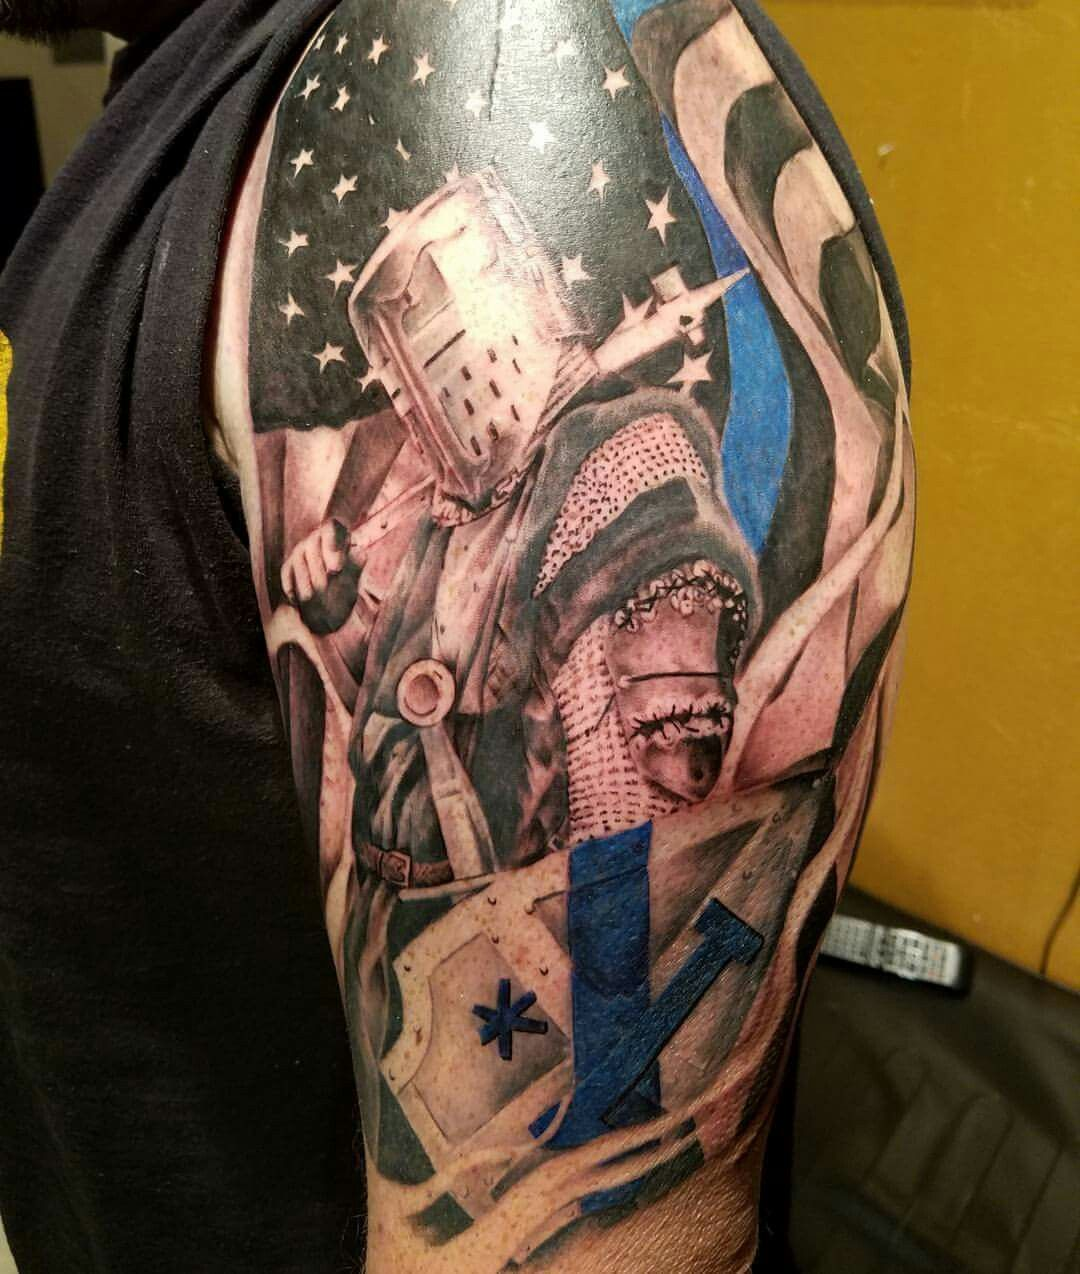 Police tattoo 1 asterisk tattoo thin blue line tattoo for Law enforcement memorial tattoo